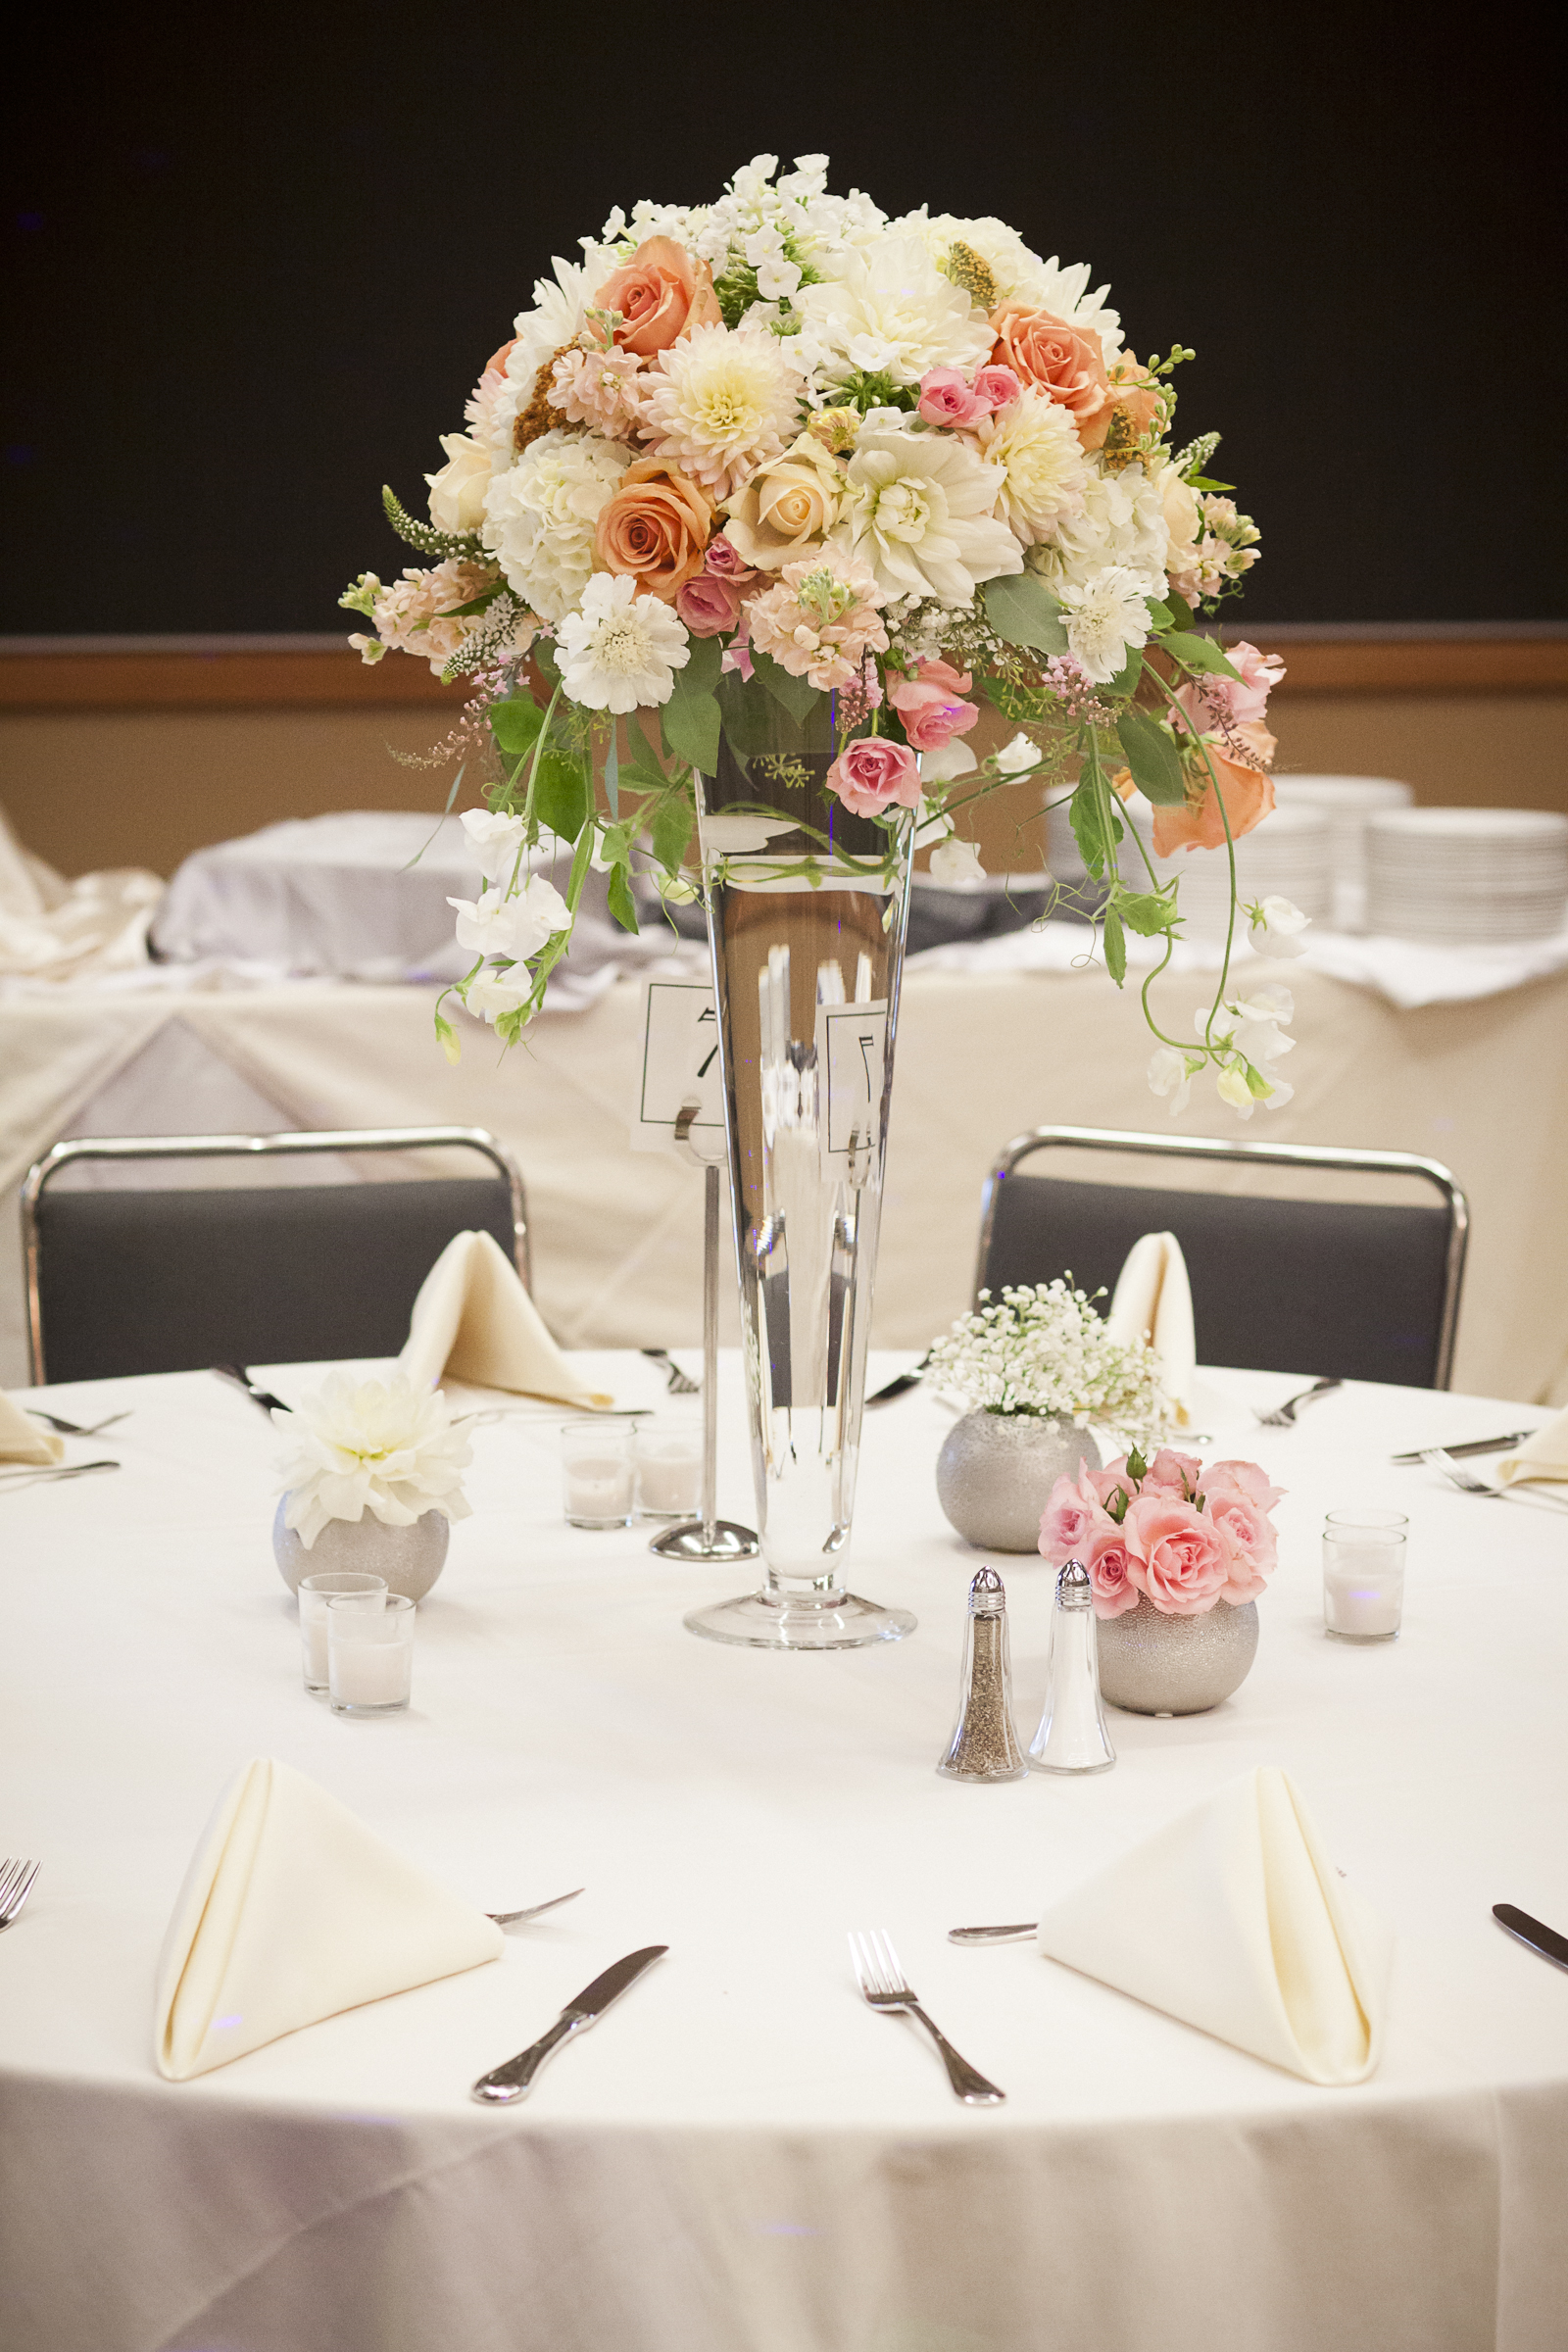 Wedding Centerpiece With Blush And Peach Roses White Hydrangea Sweet Peas